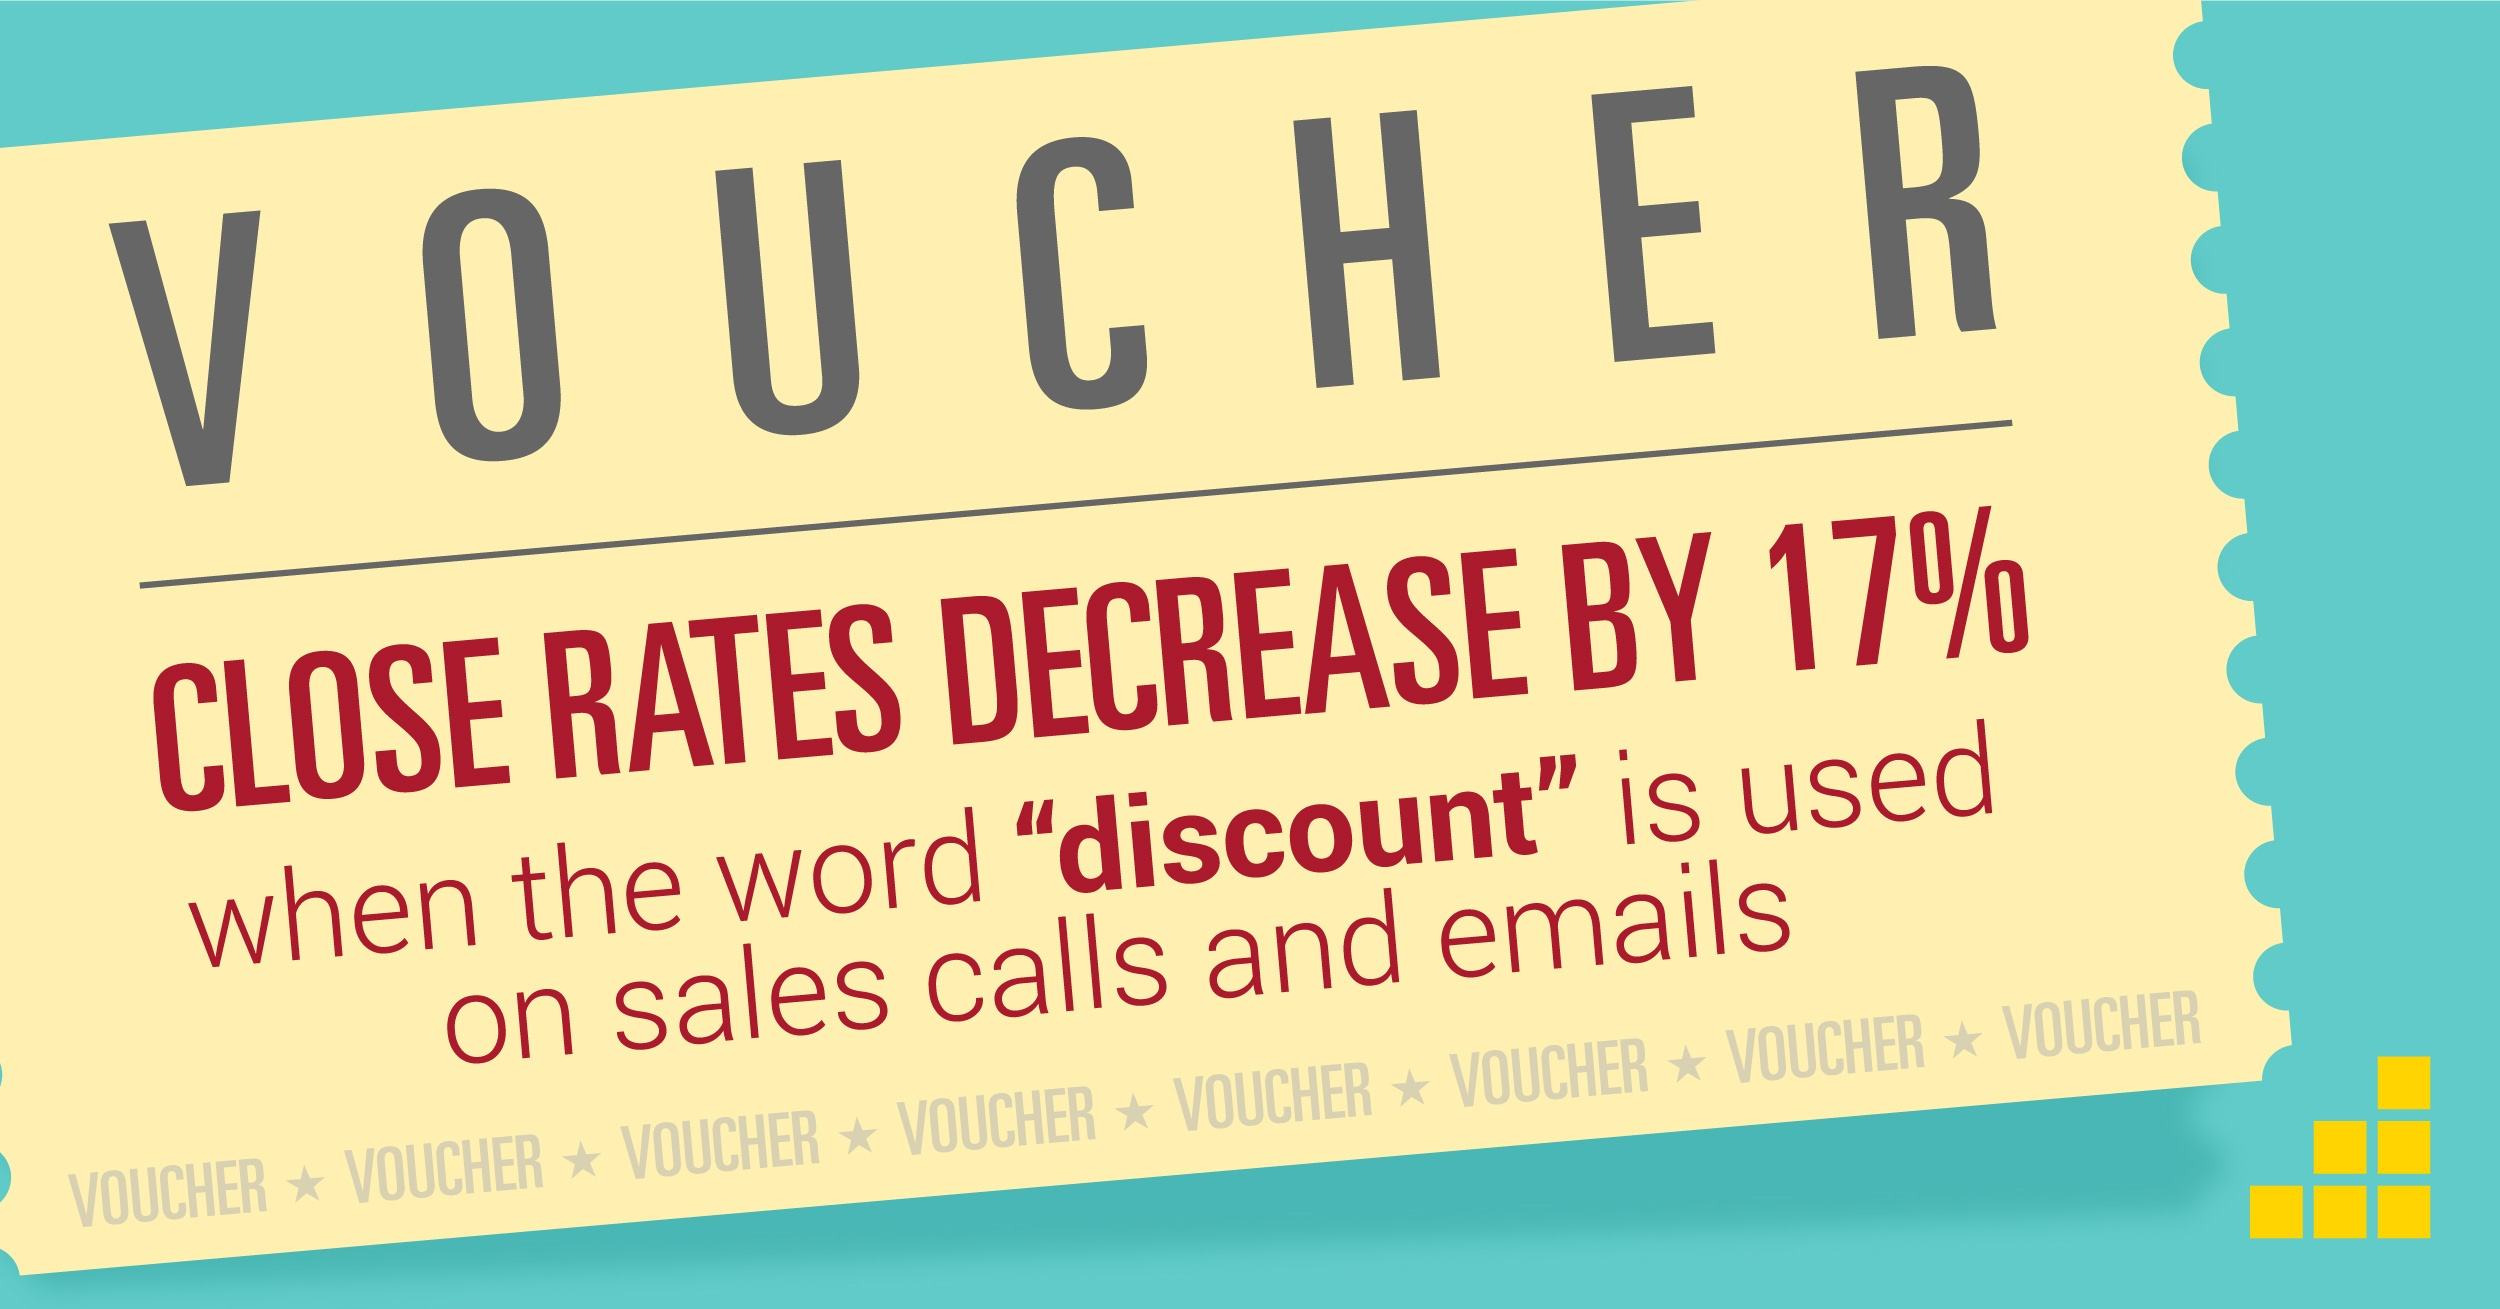 "Close rates decrease by 17% when the word ""discount"" is used on sales calls and emails - sales productivity stat"